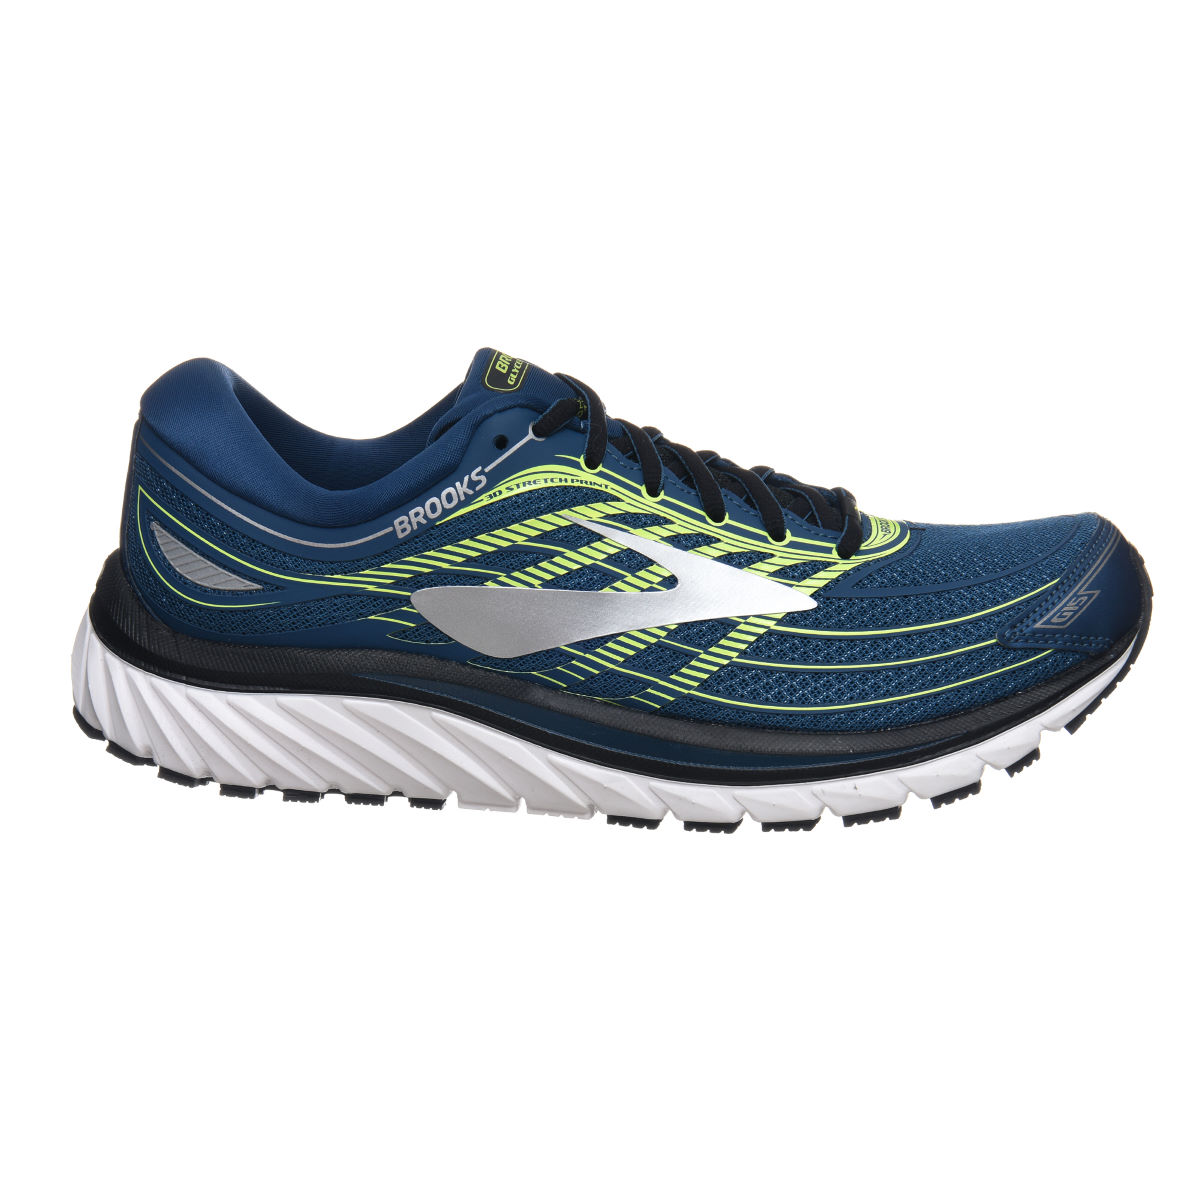 Chaussures Brooks Glycerin 15 - UK 9.5 Blue/Yellow